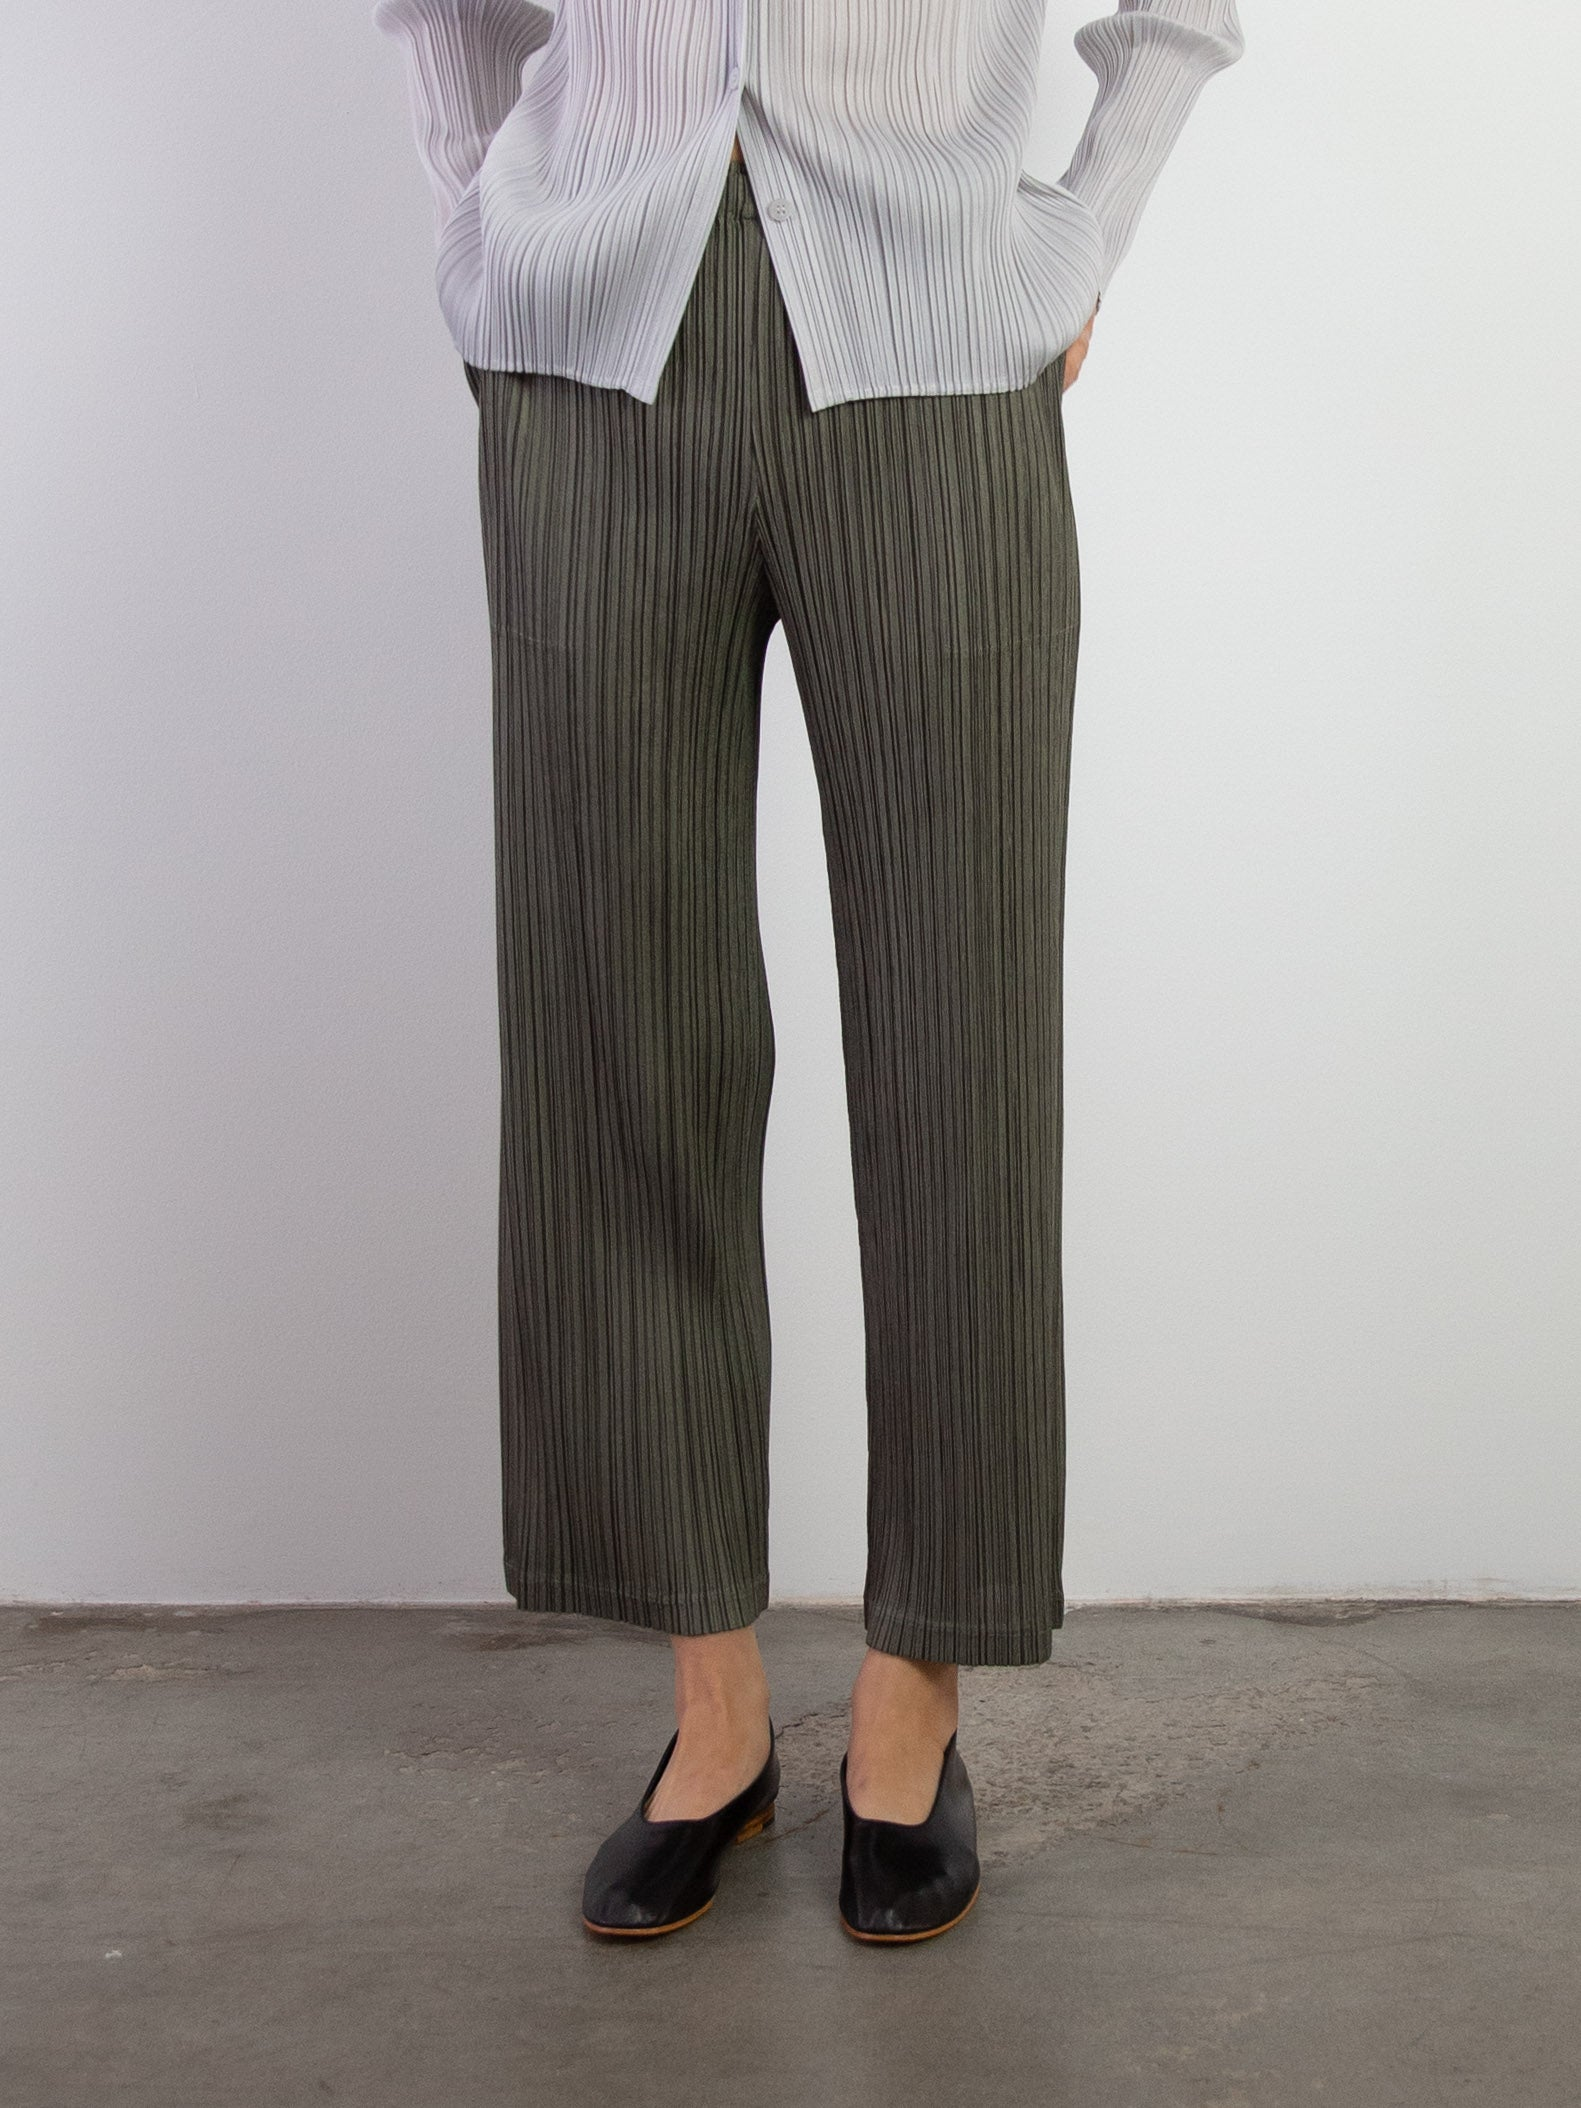 Thicker Bottoms II Straight Pants - Dark Olive